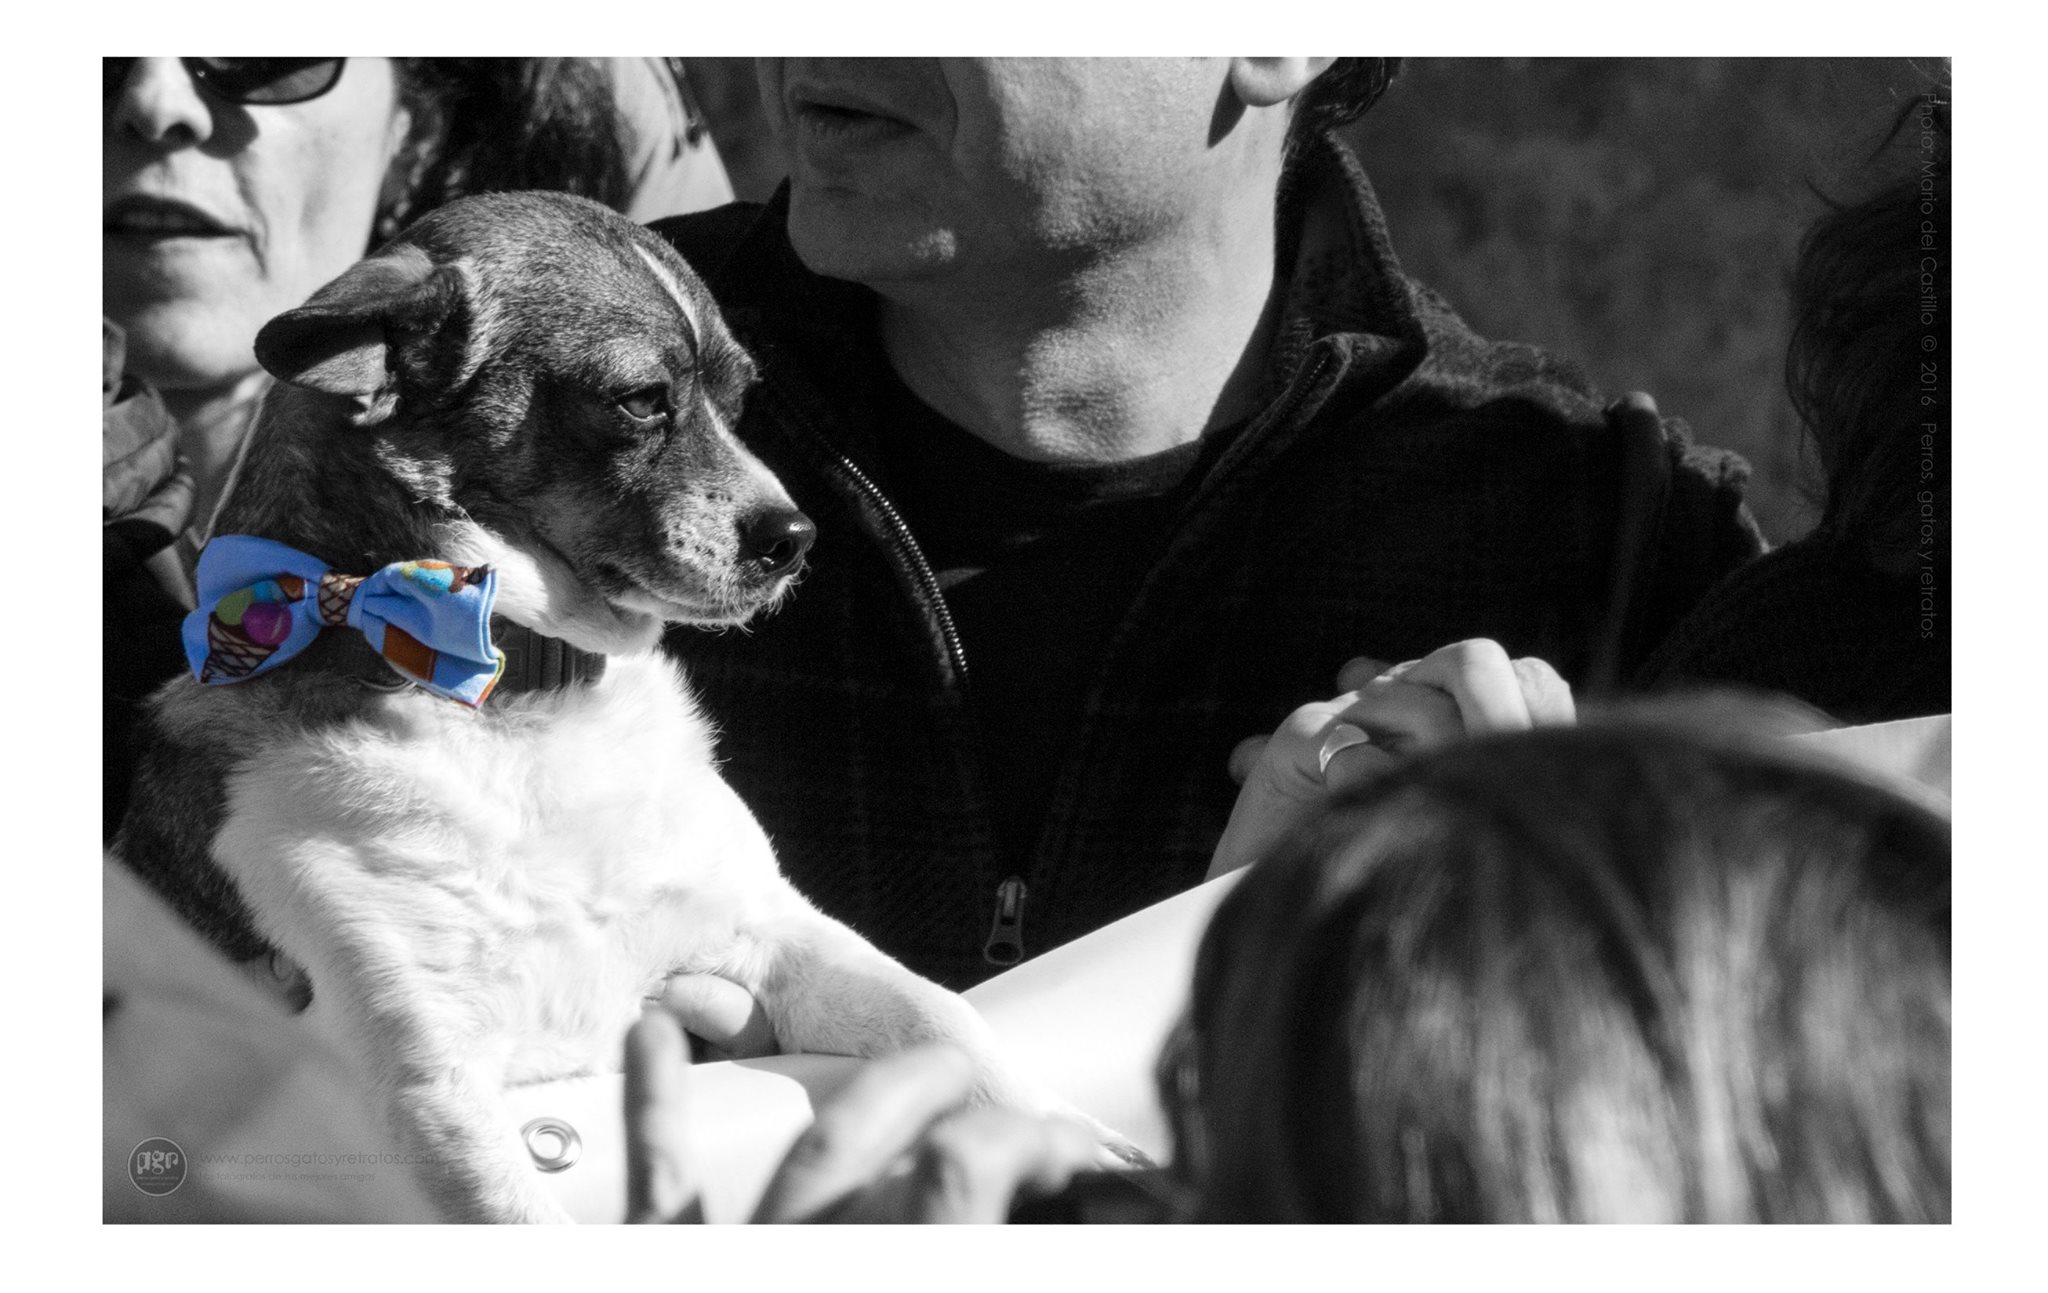 Spanish town is world's first to enact Bill of Rights for pets